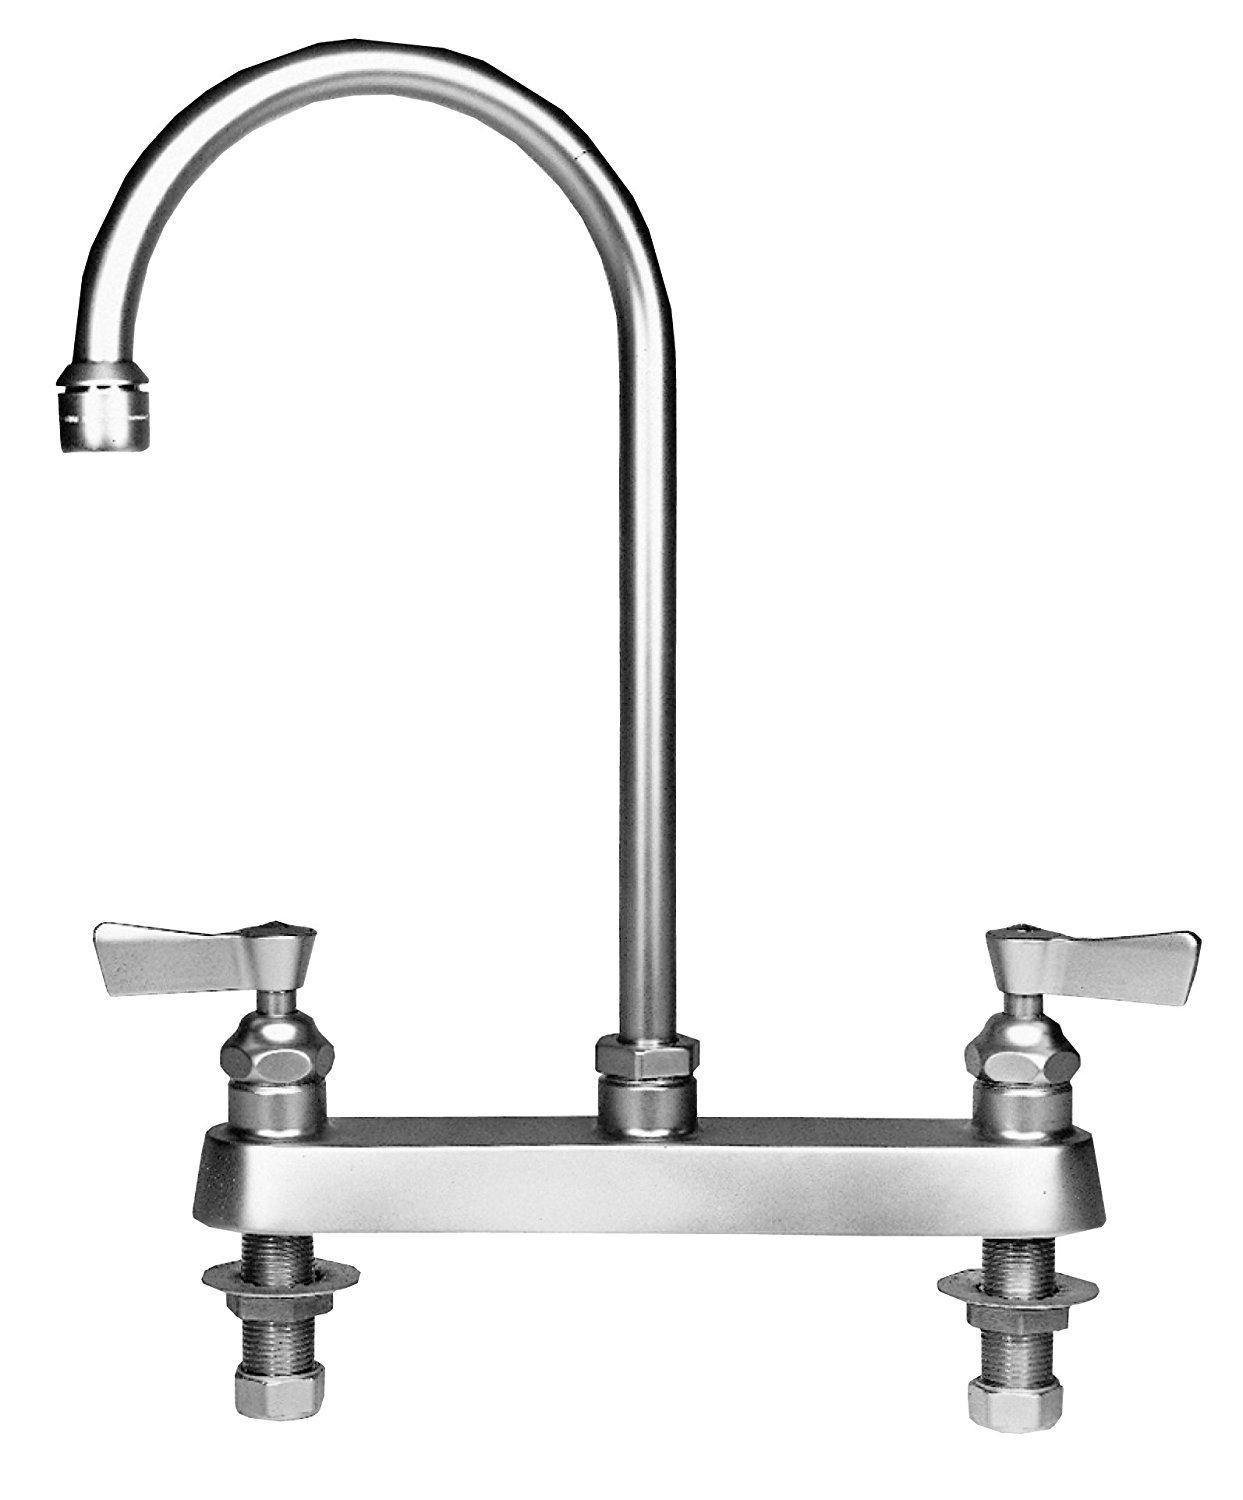 Fisher 1821 Faucet 8dlh 06sgn